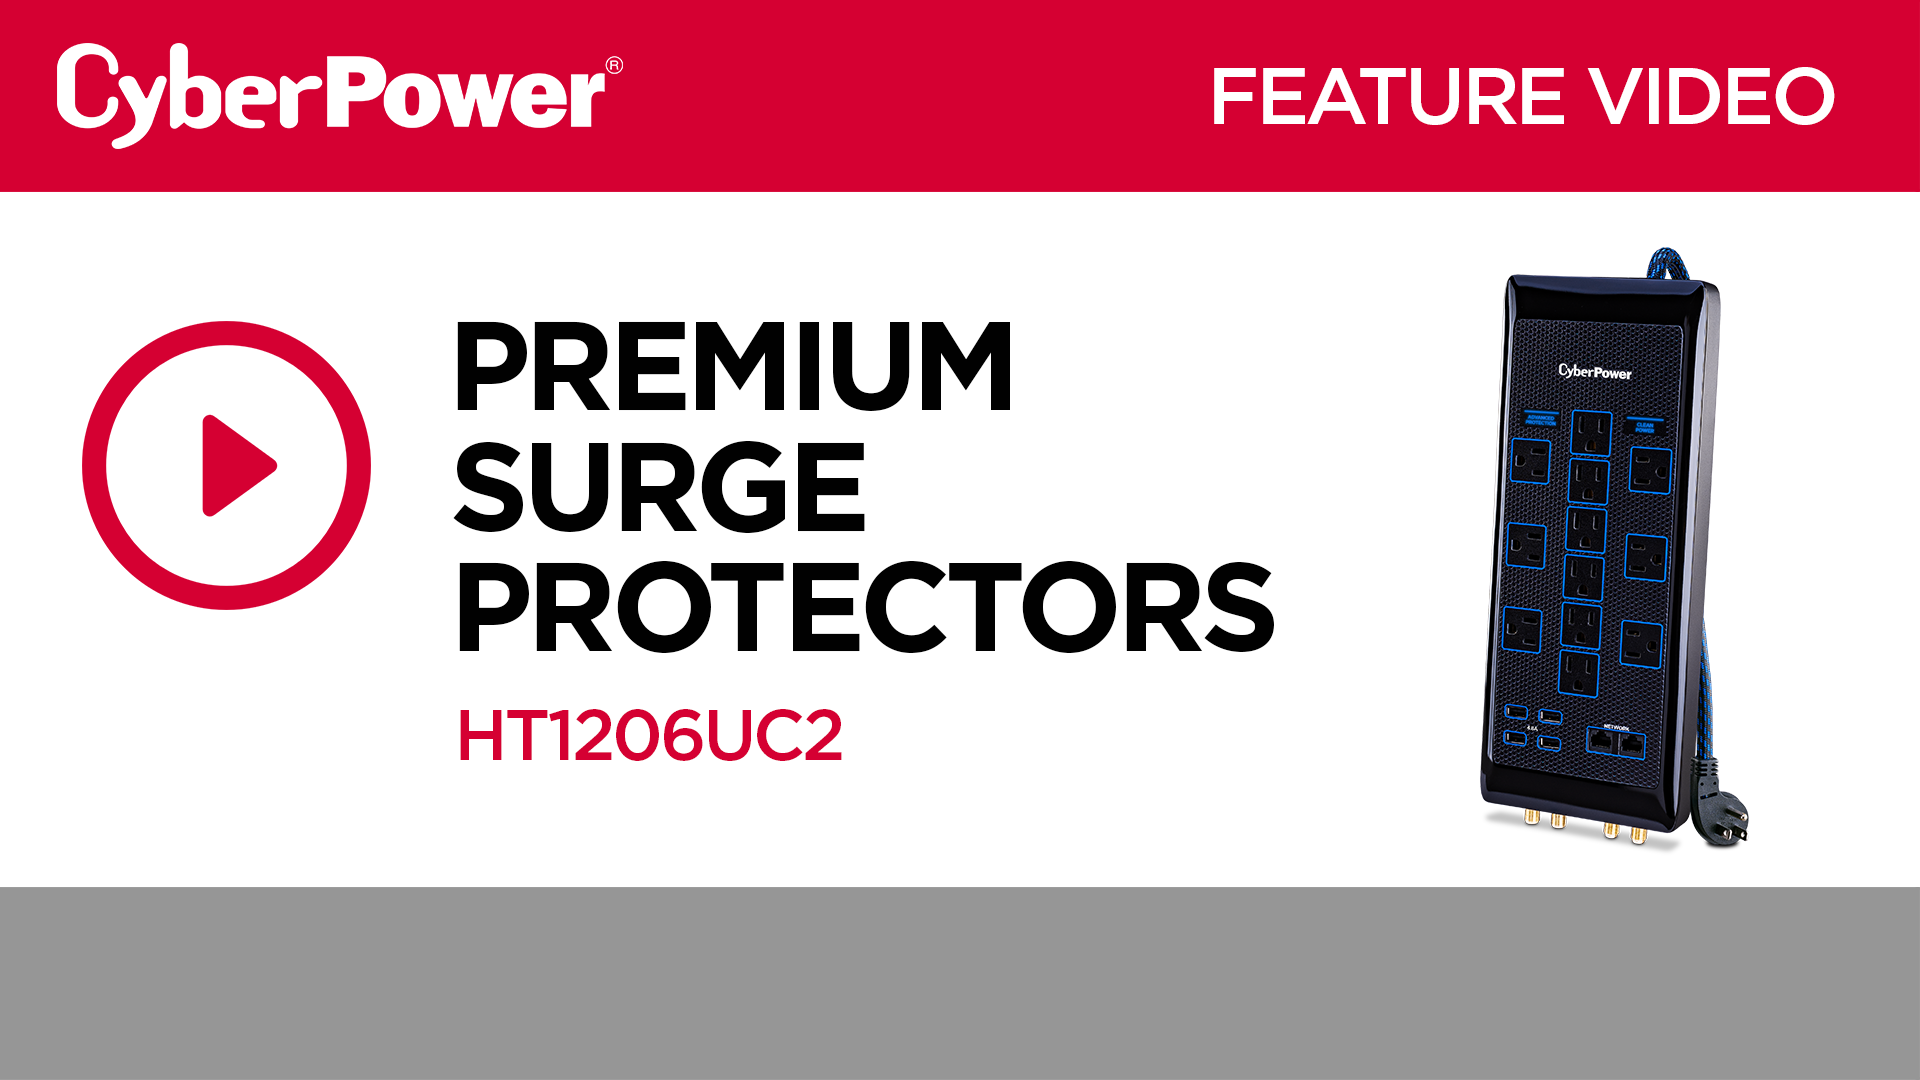 HT1206UC2 Feature